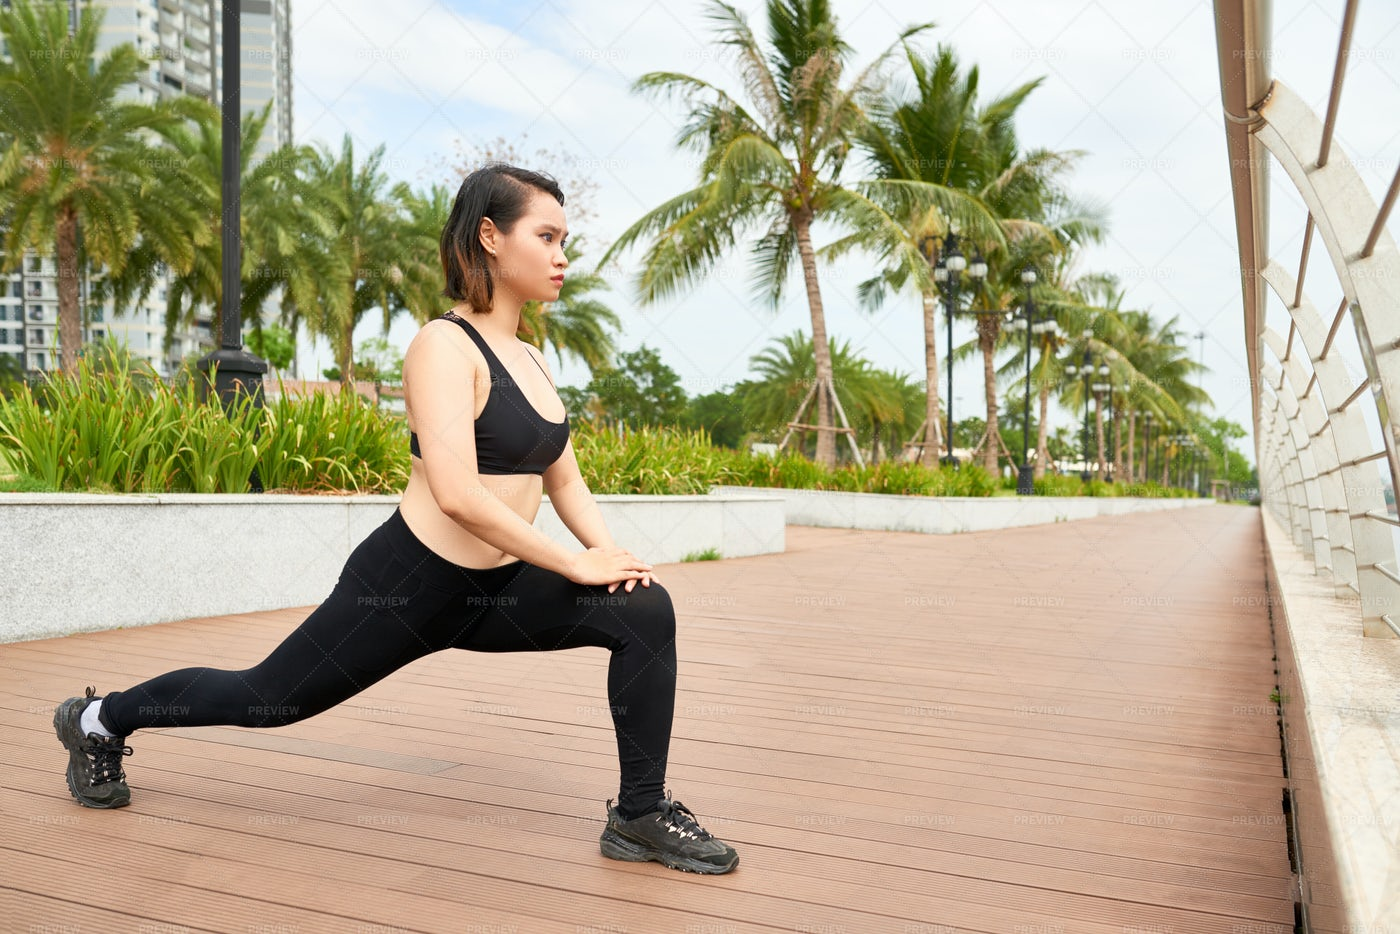 Woman Working Out Outdoors: Stock Photos